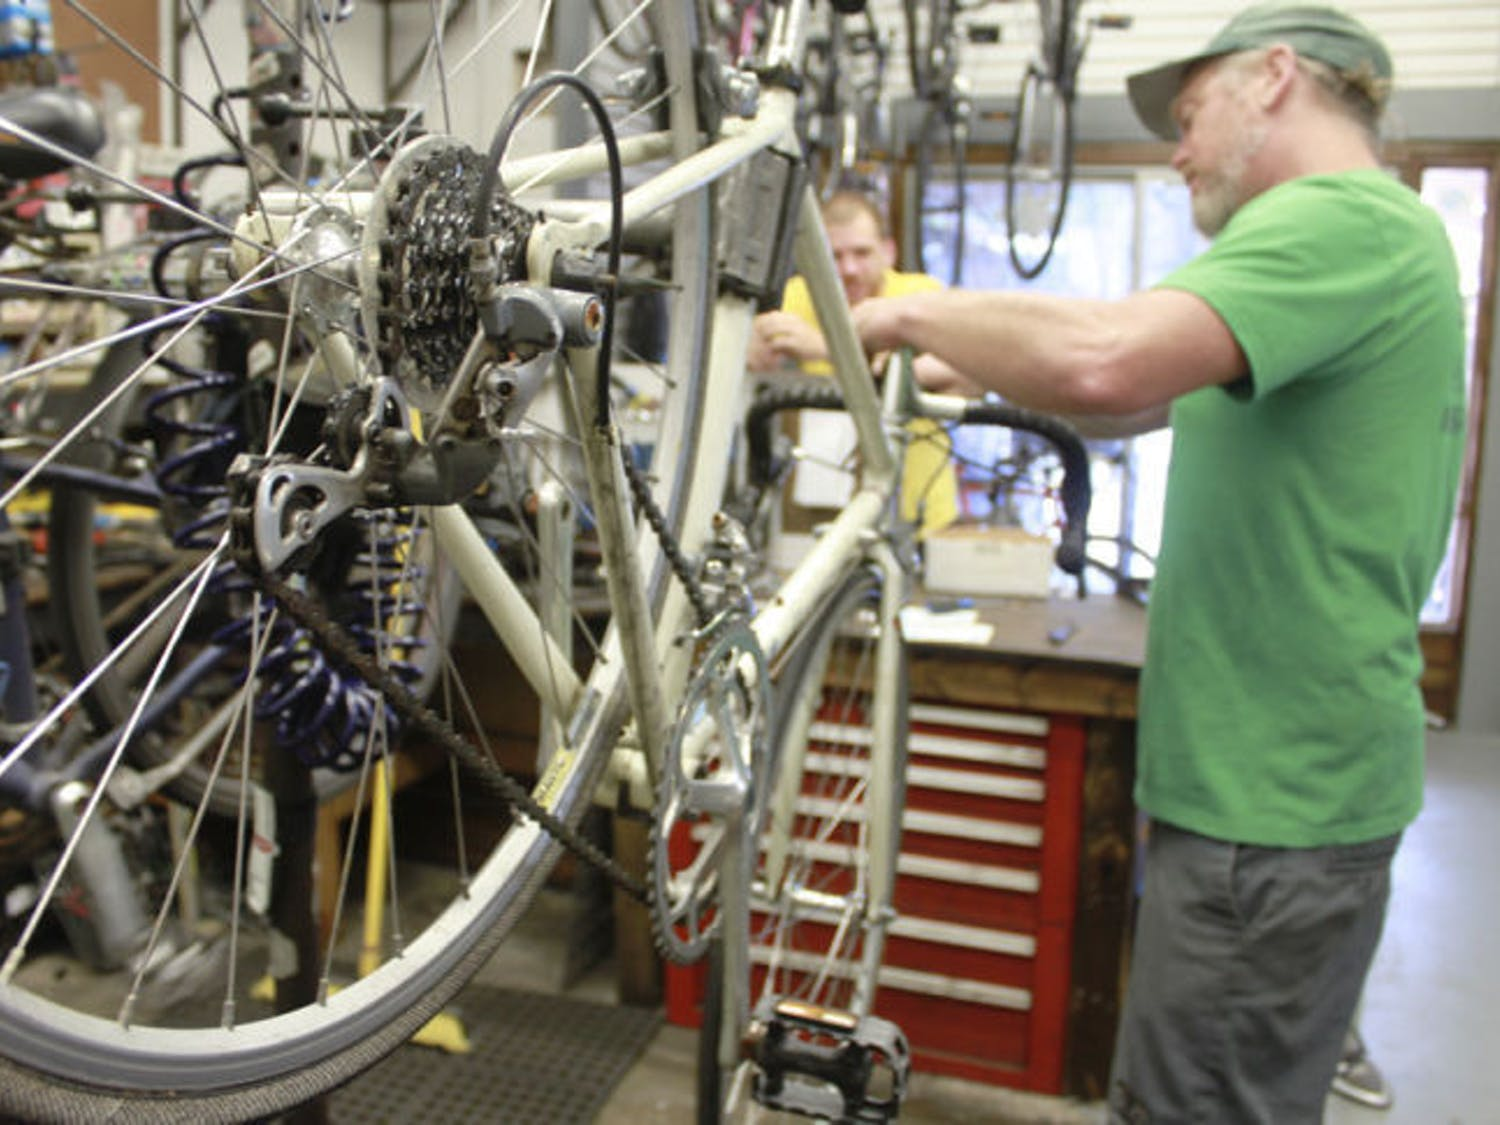 Mike Hetrick, 47, owner of Goodbike, works on a vintage Fuji road bike on Wednesday. The shop at 425 NW 13th St. opened its doors with a new name and new management on the Fourth of July.